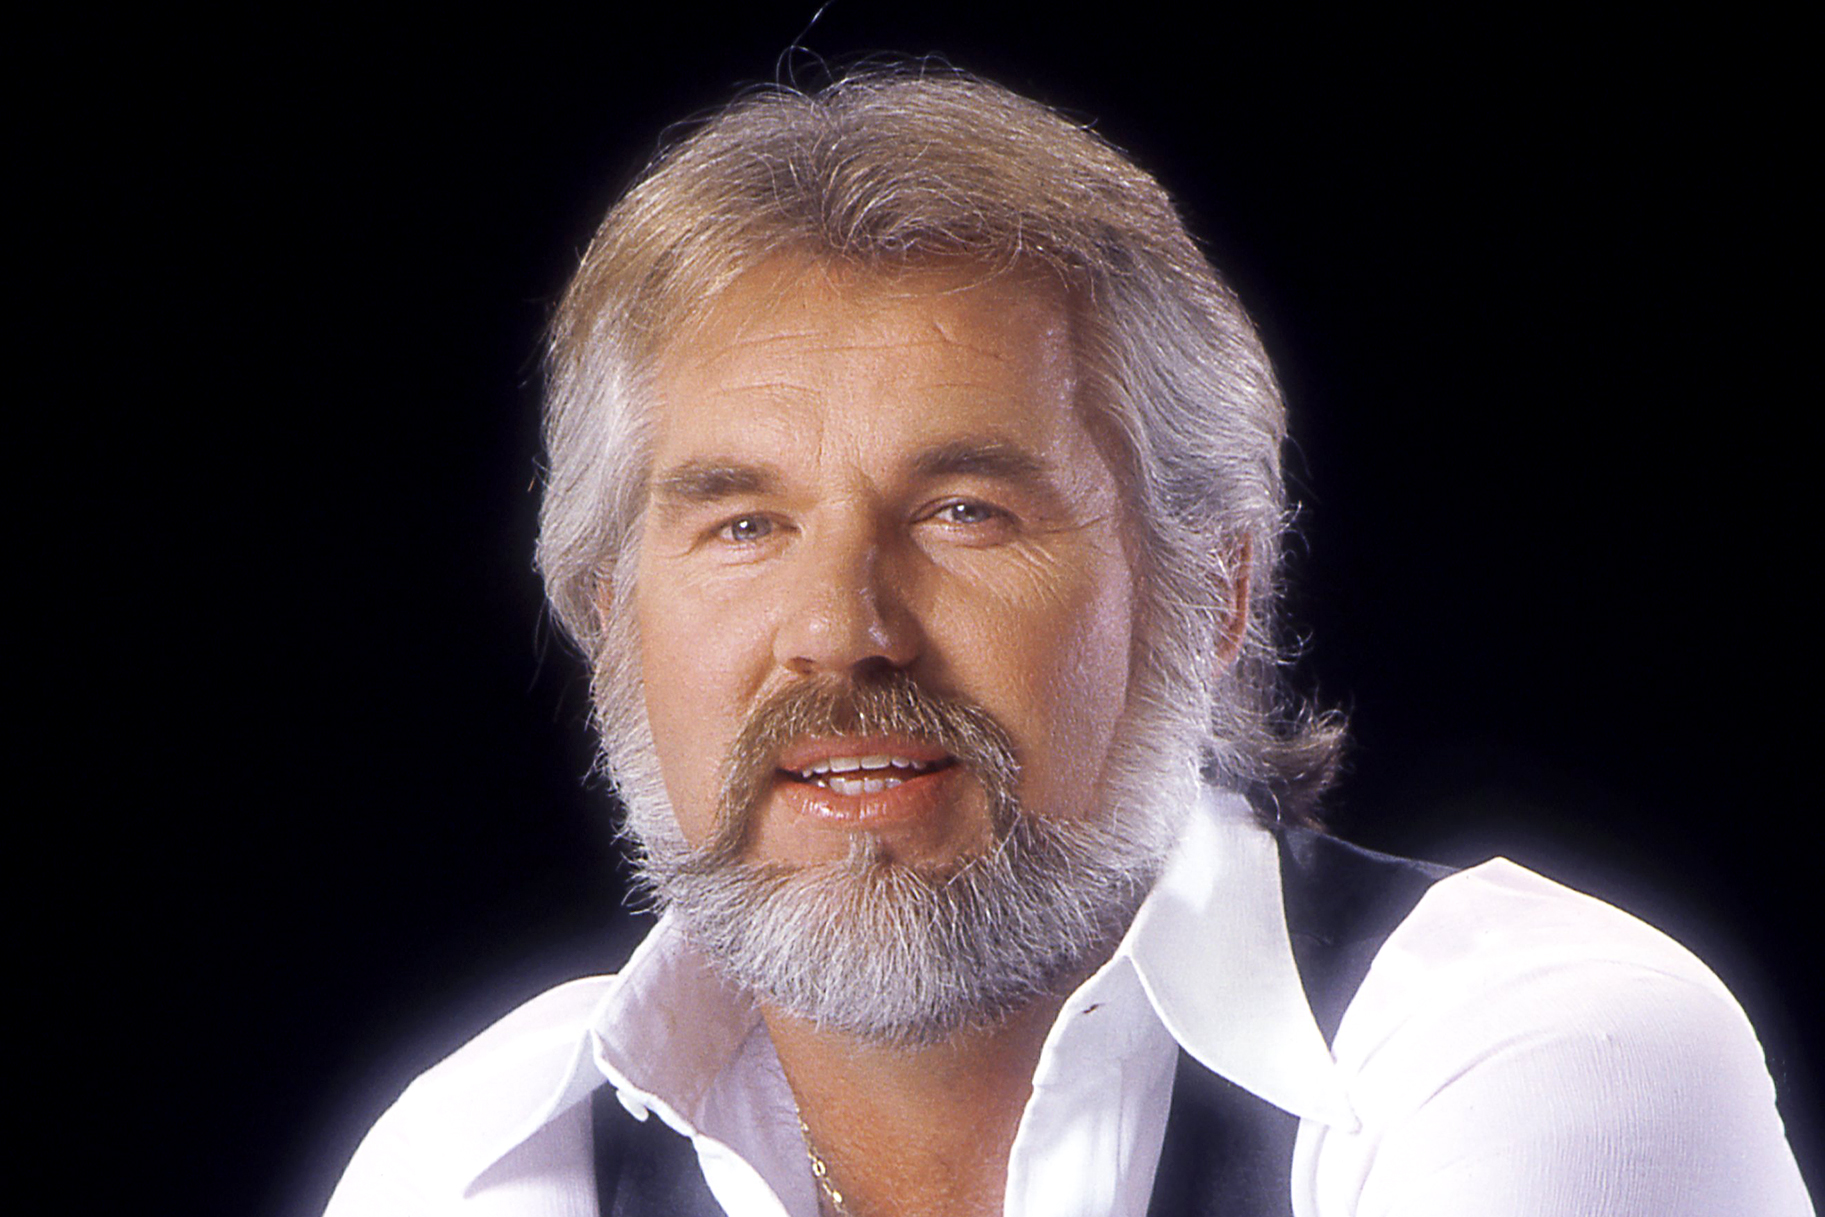 Kenny Rogers' Son & The Real Housewives of Dallas Connection | The Daily Dish